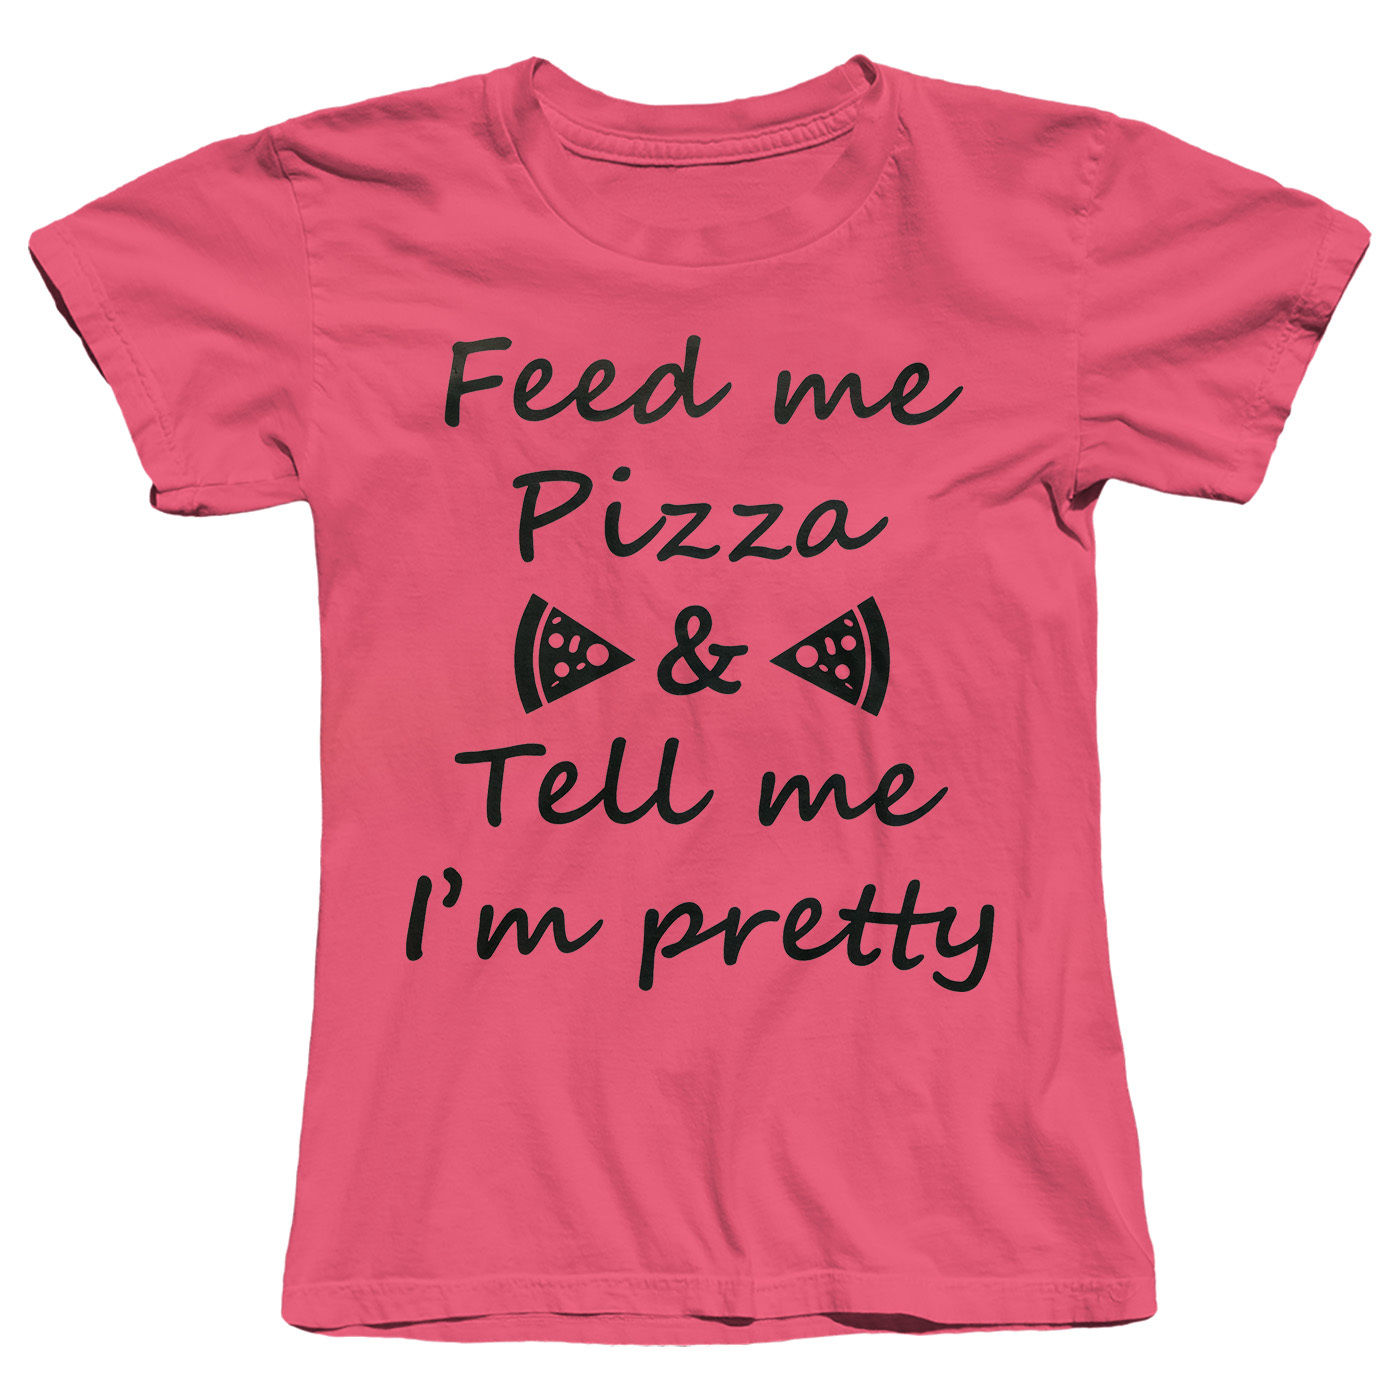 Feed Me Pizza And Tell Me Im Pretty Funny Womens T-Shirt For Women Streetwear Kawaii Brand Tops Tees Print T Shirt For Lady